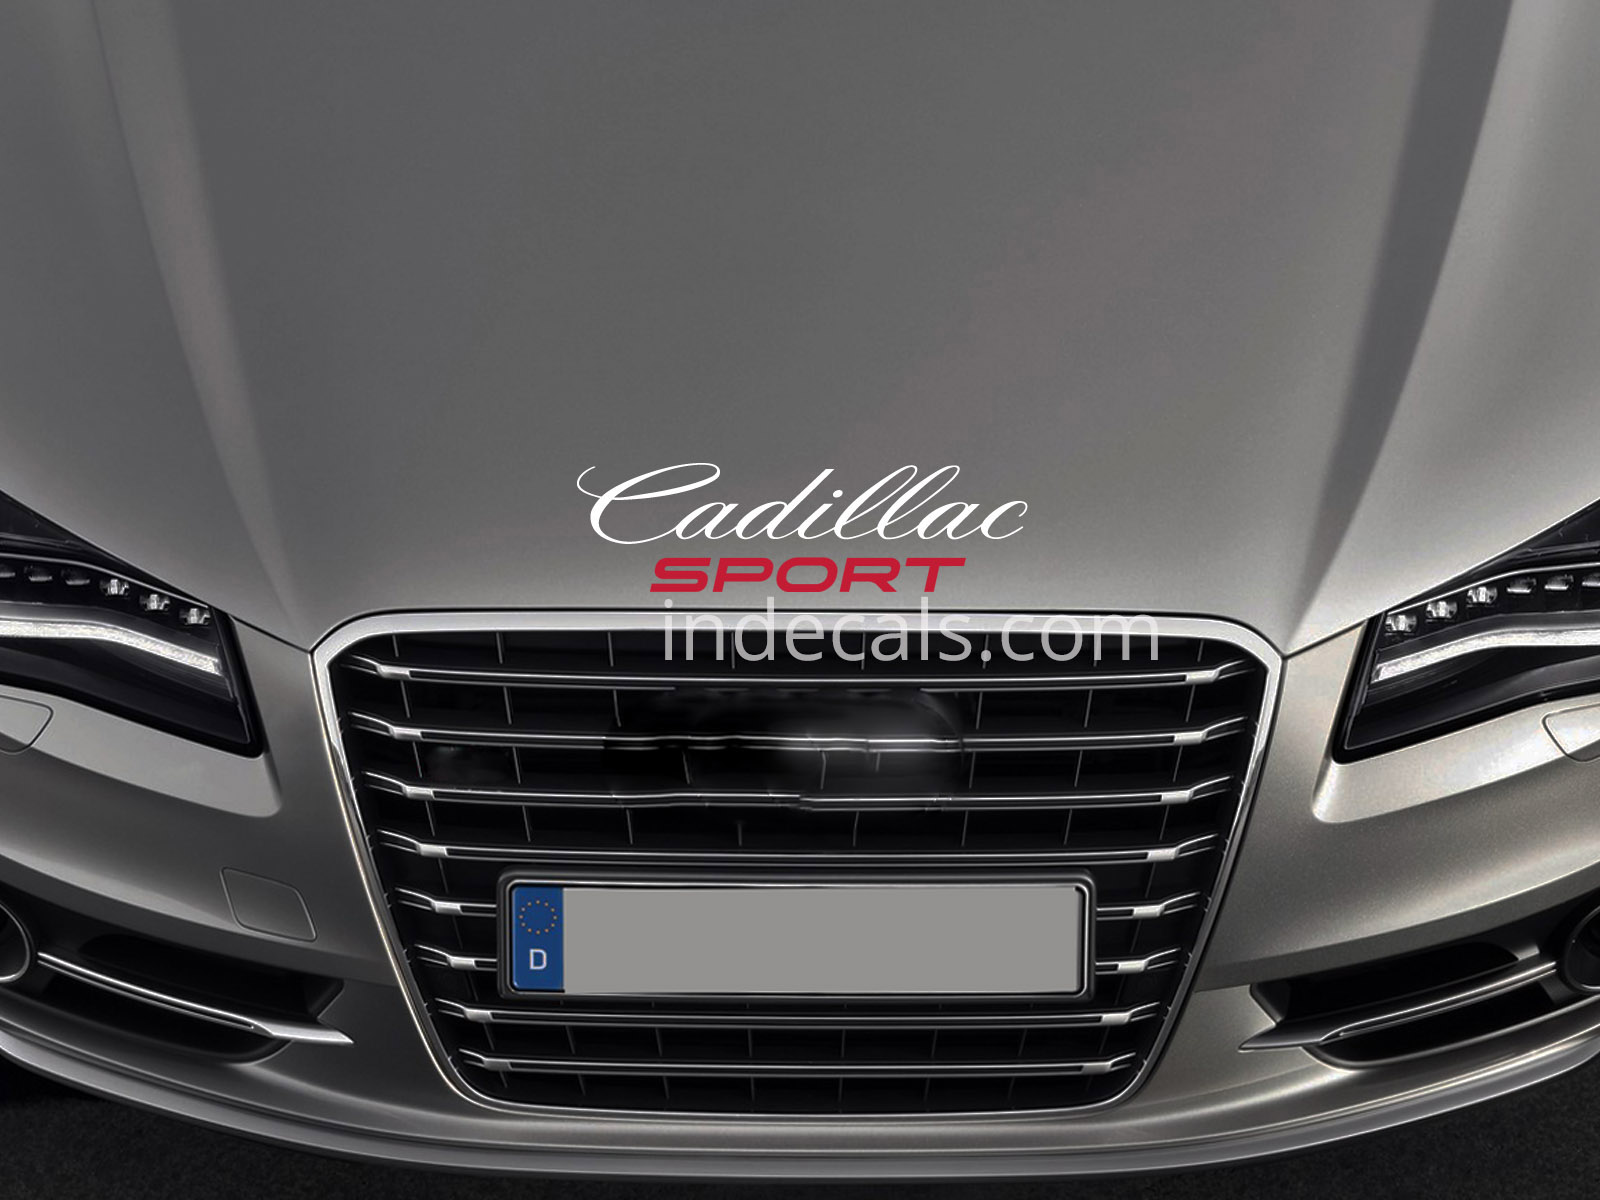 1 x Cadillac Sport Sticker for Bonnet - White & Red